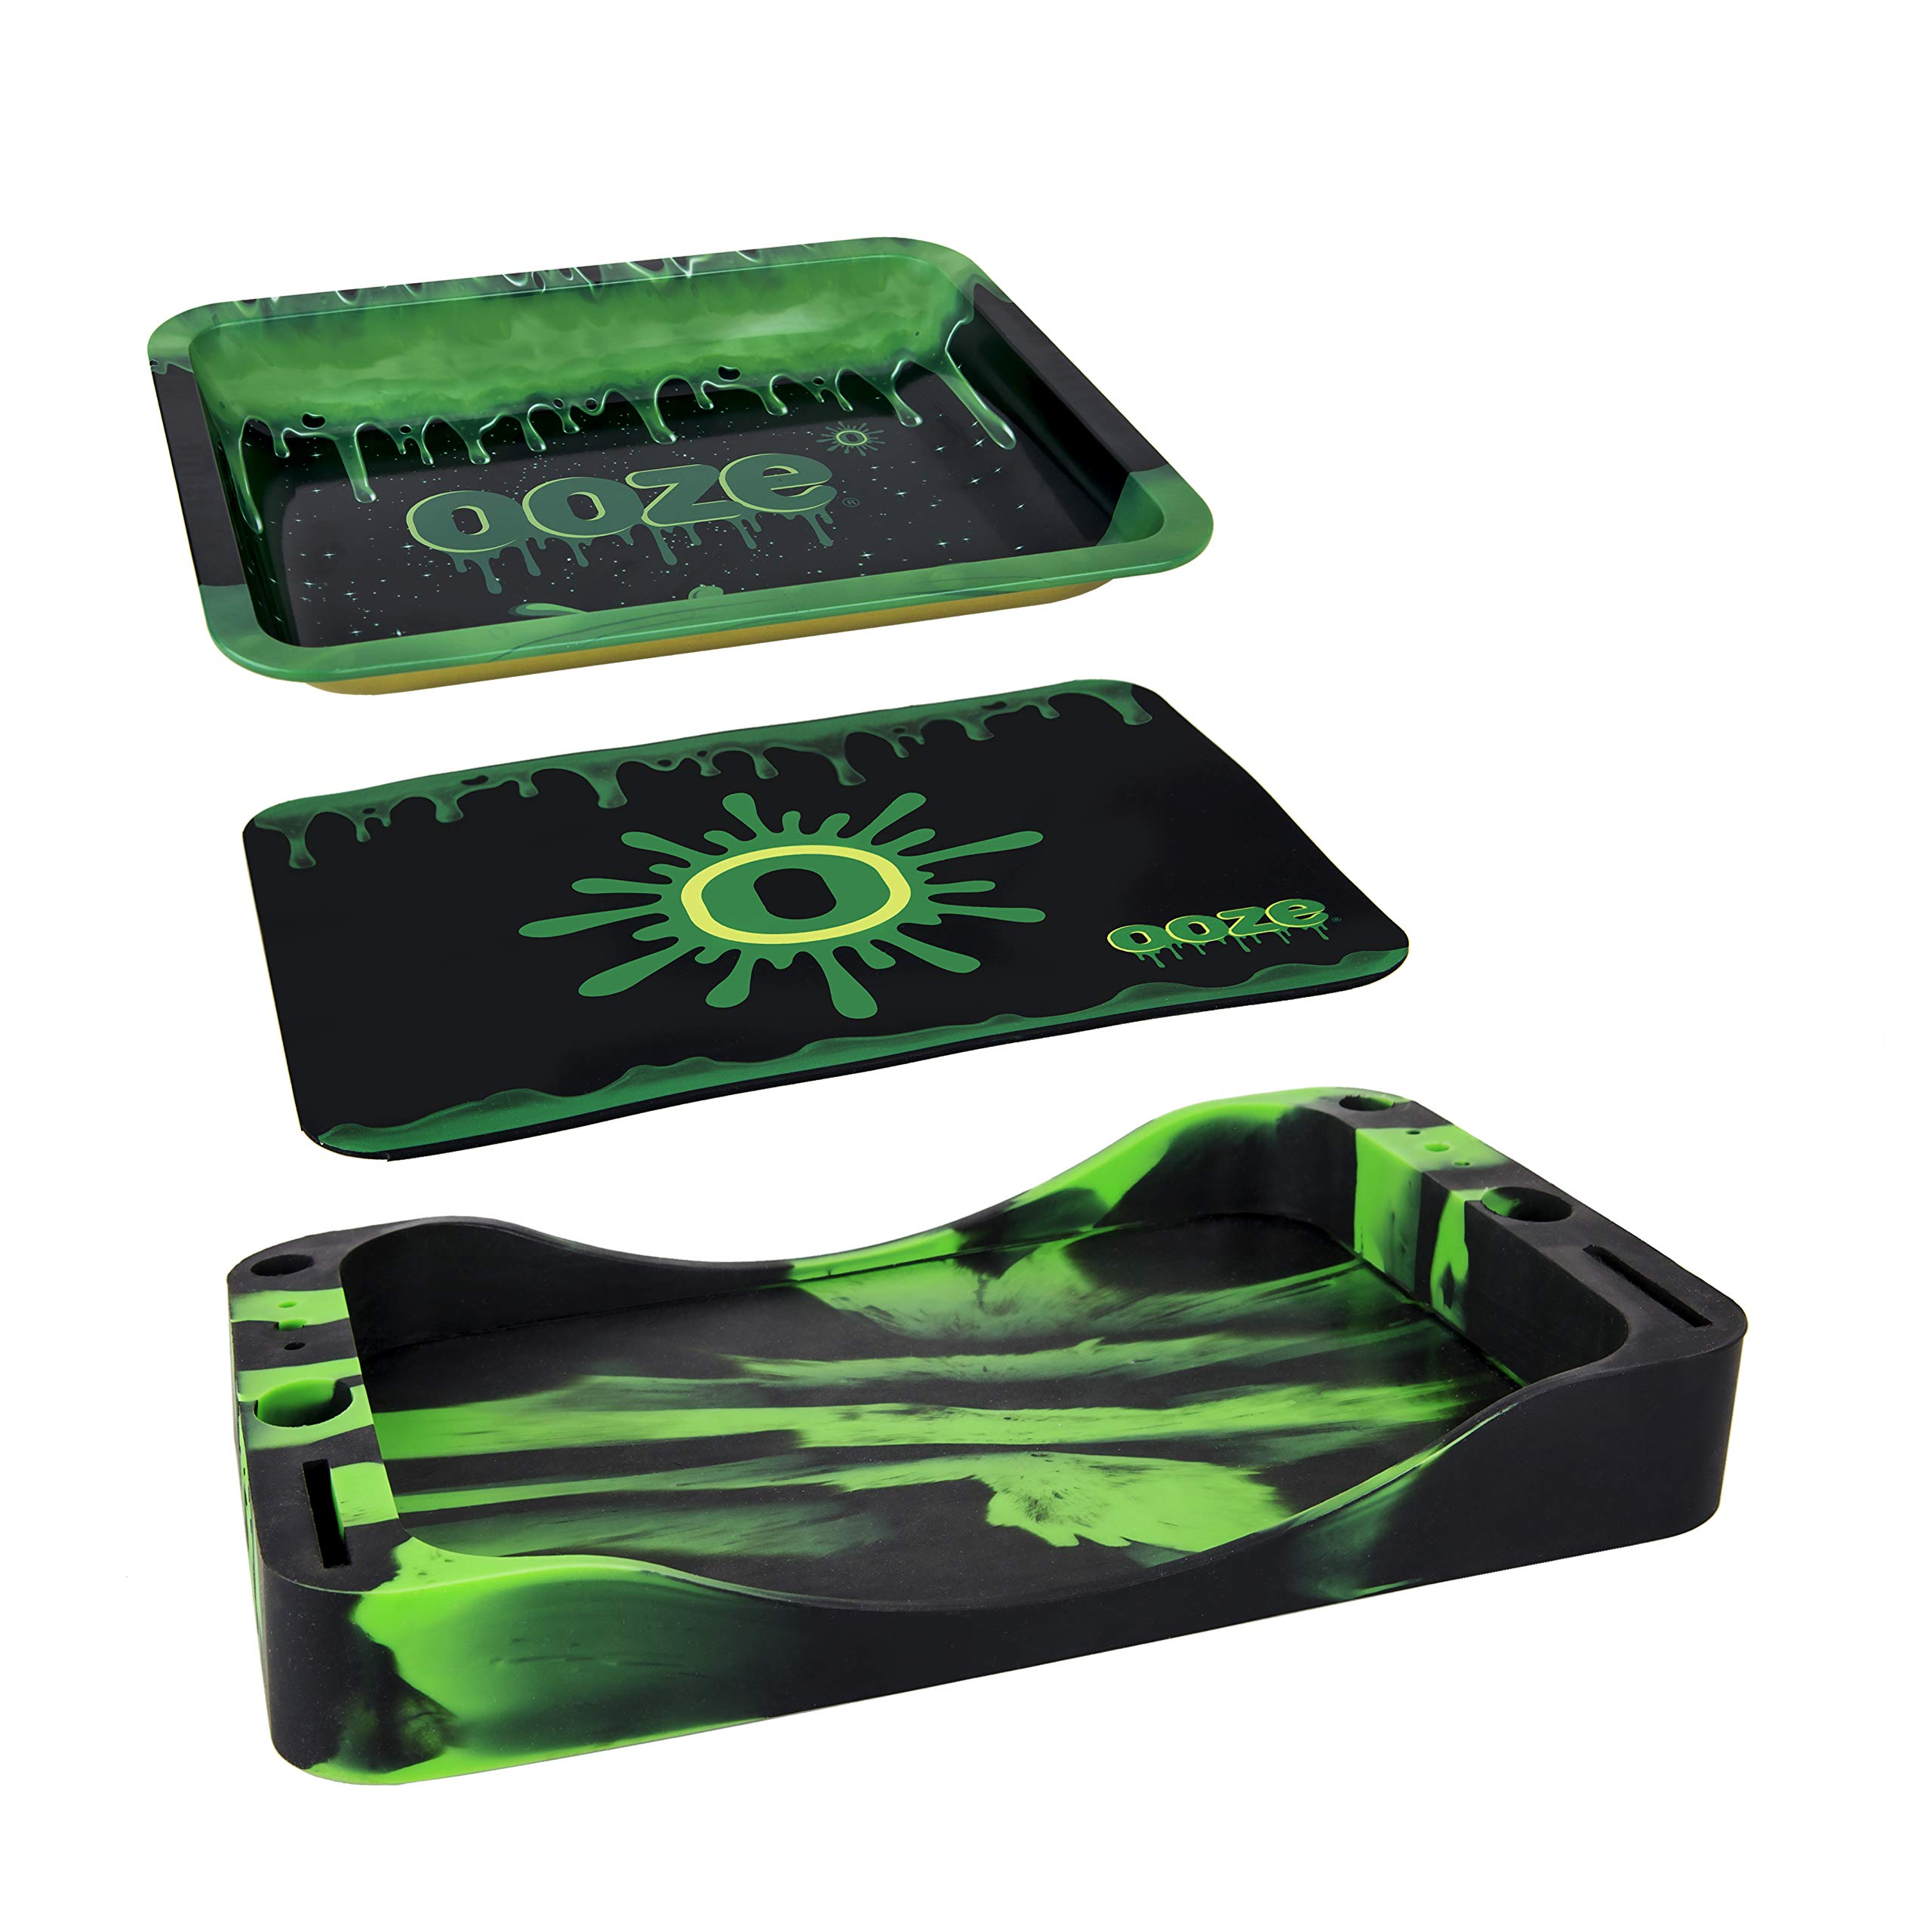 Ooze Dab Depot - 3-in-1 Bundle Set - Metal Rolling Tray, Silicone Tray, and Platinum Cured Mat by Ooze